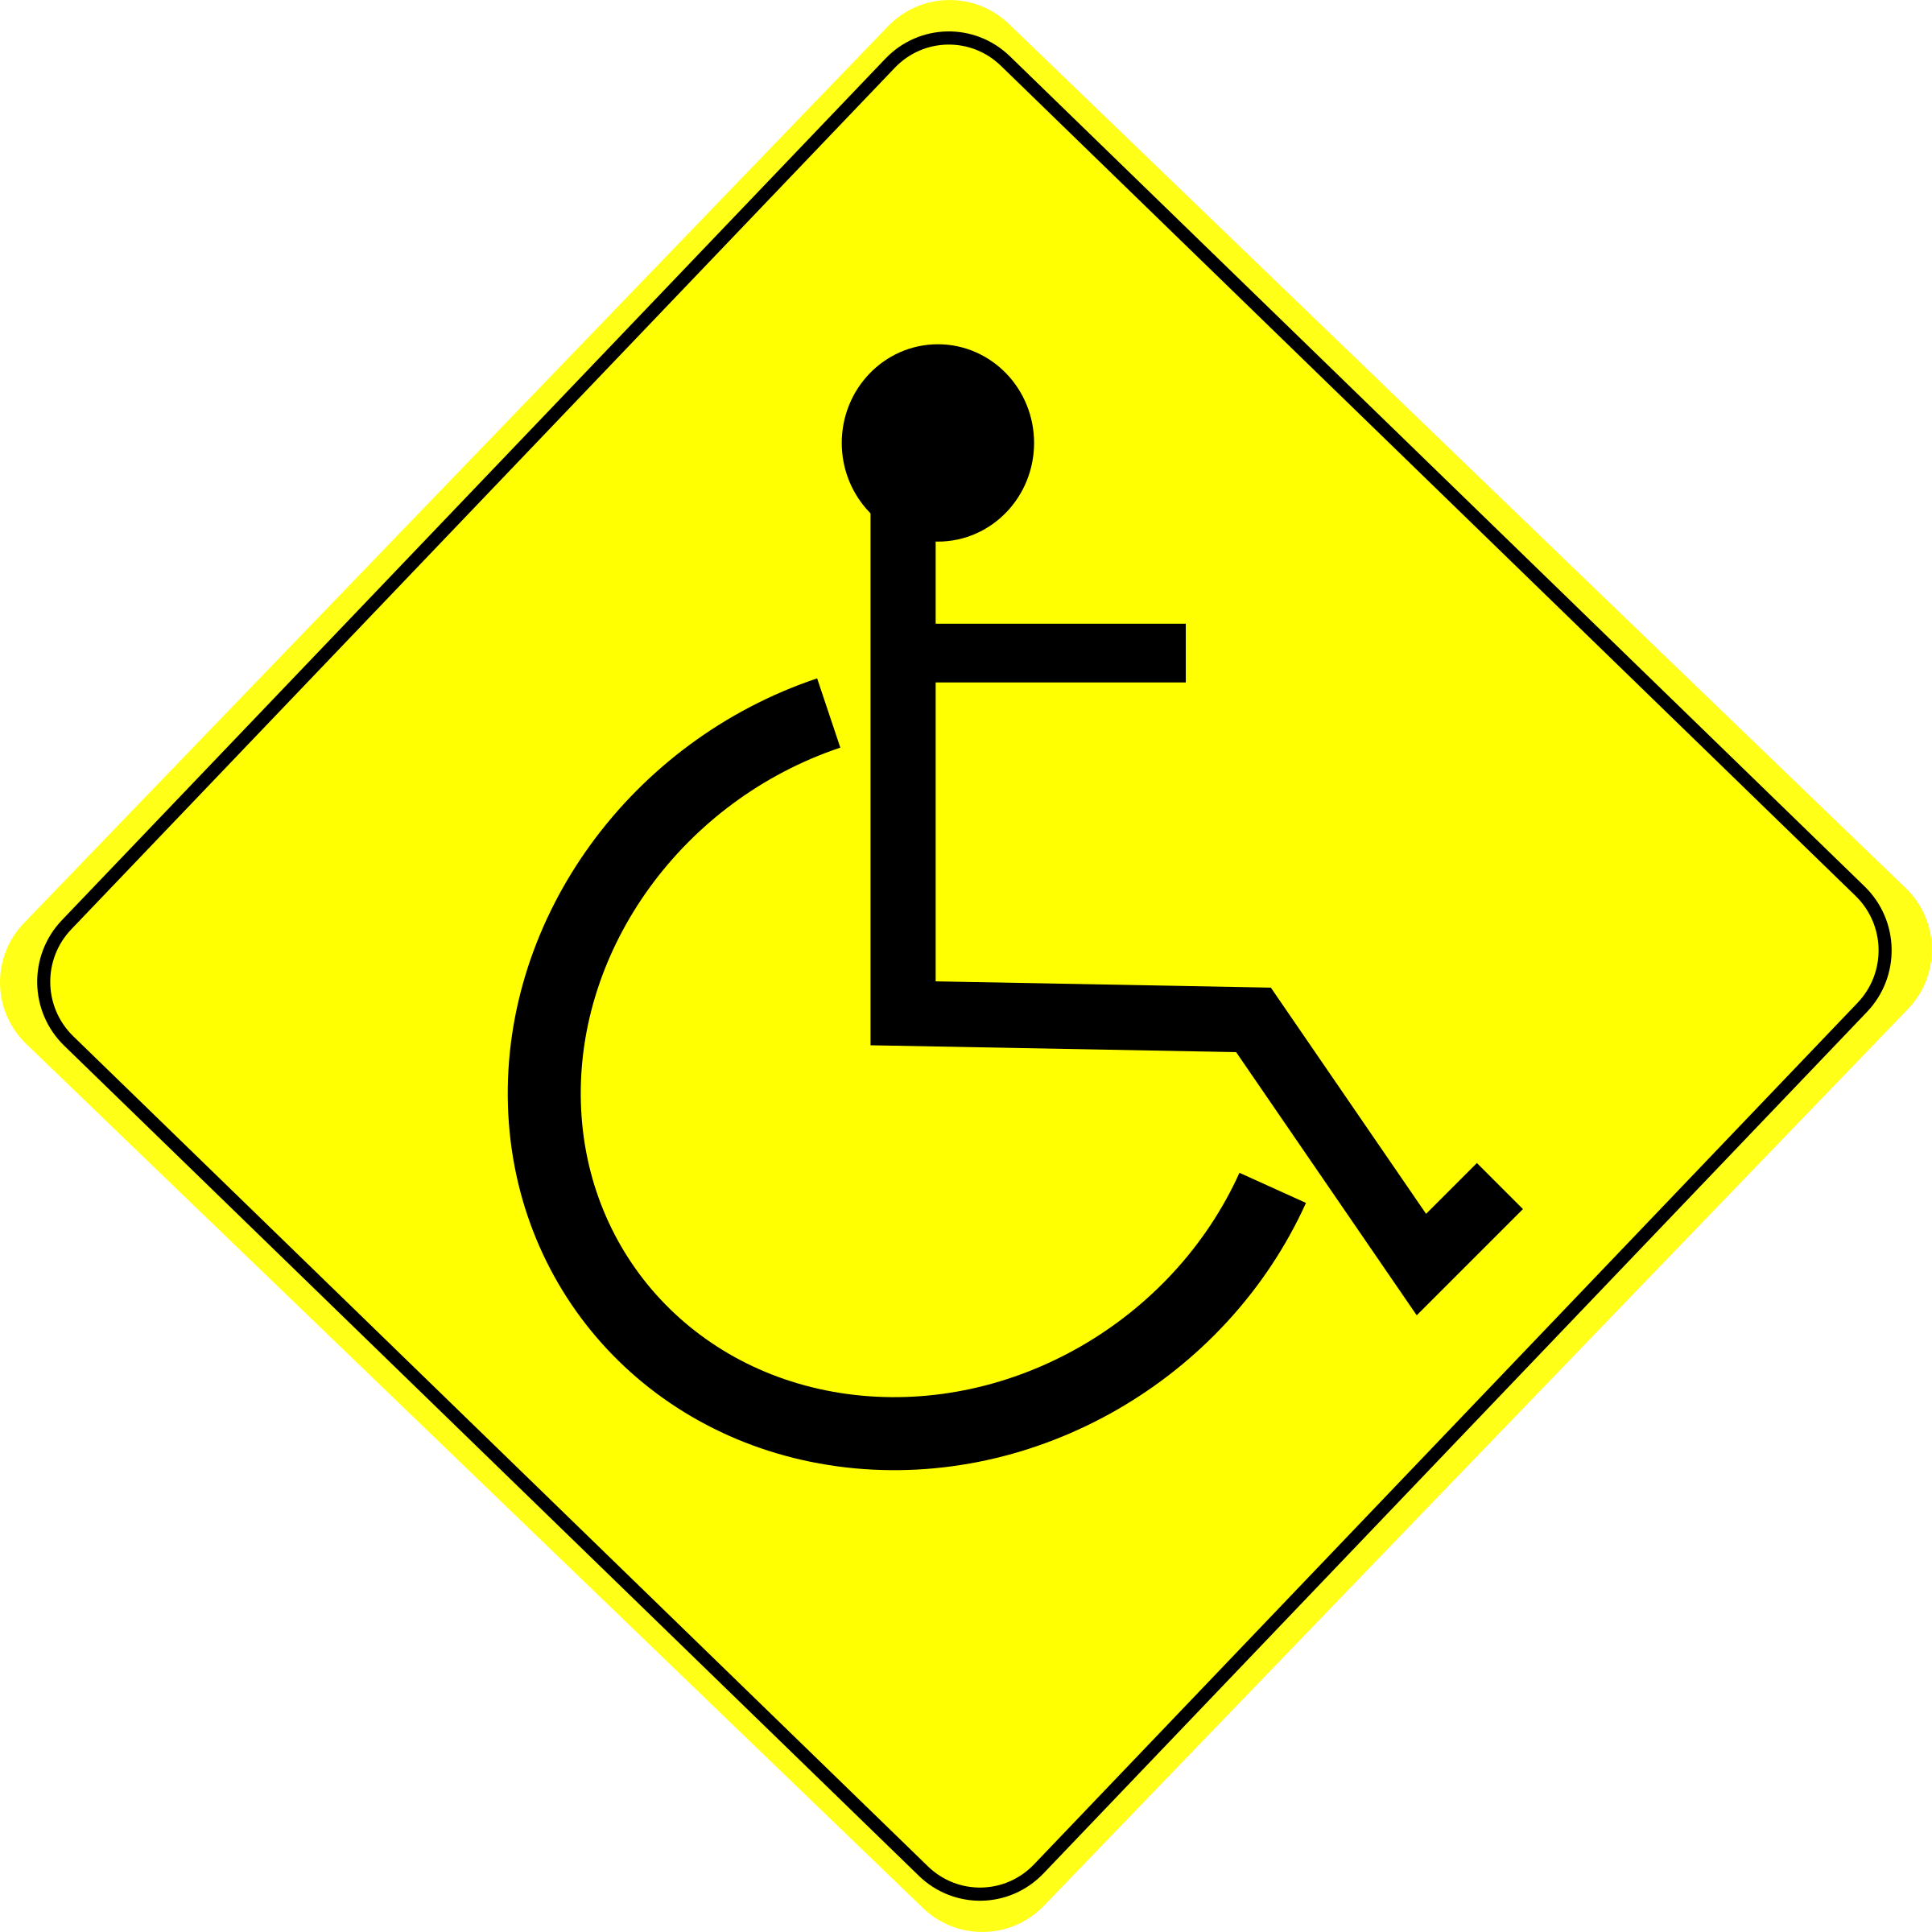 School sign clipart banner freeuse Clipart - Wheelchair Caution Sign Black - Free Clipart Icon Download banner freeuse